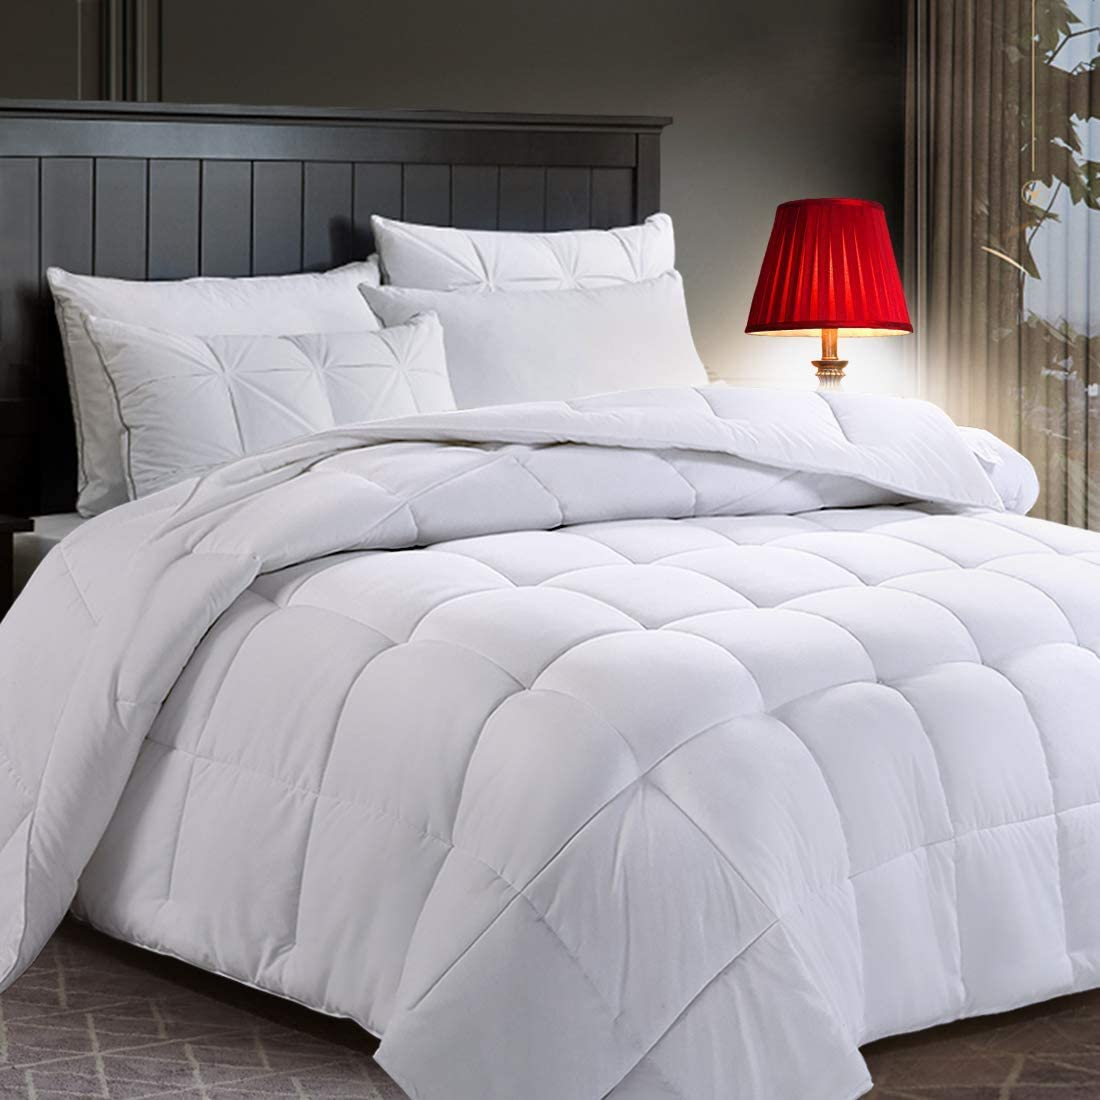 COTTONHOUSE King Size Cooling Comforter Fluffy Reversible Quilted Duvet Insert Down Alternative Fill with Corner Tabs All Season - Machine Washable -White